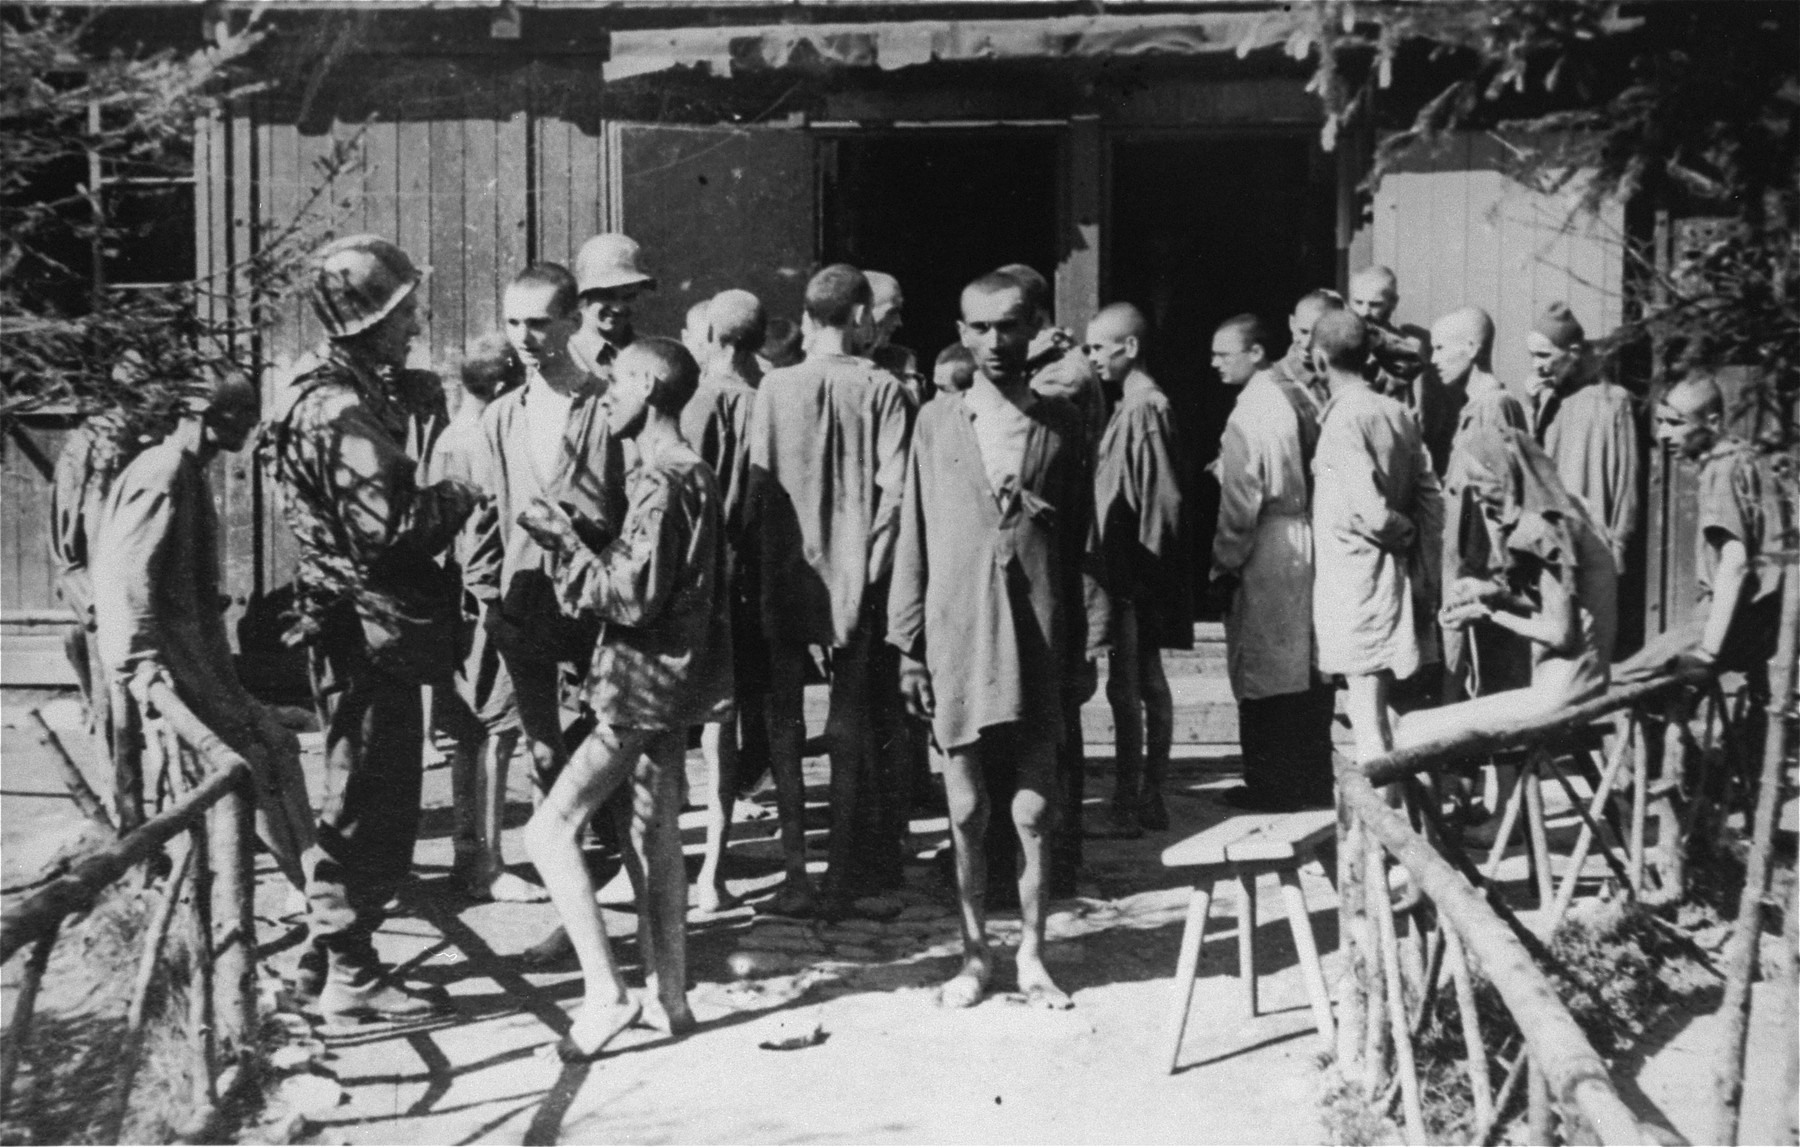 Survivors talk to American soldiers in Ebensee.